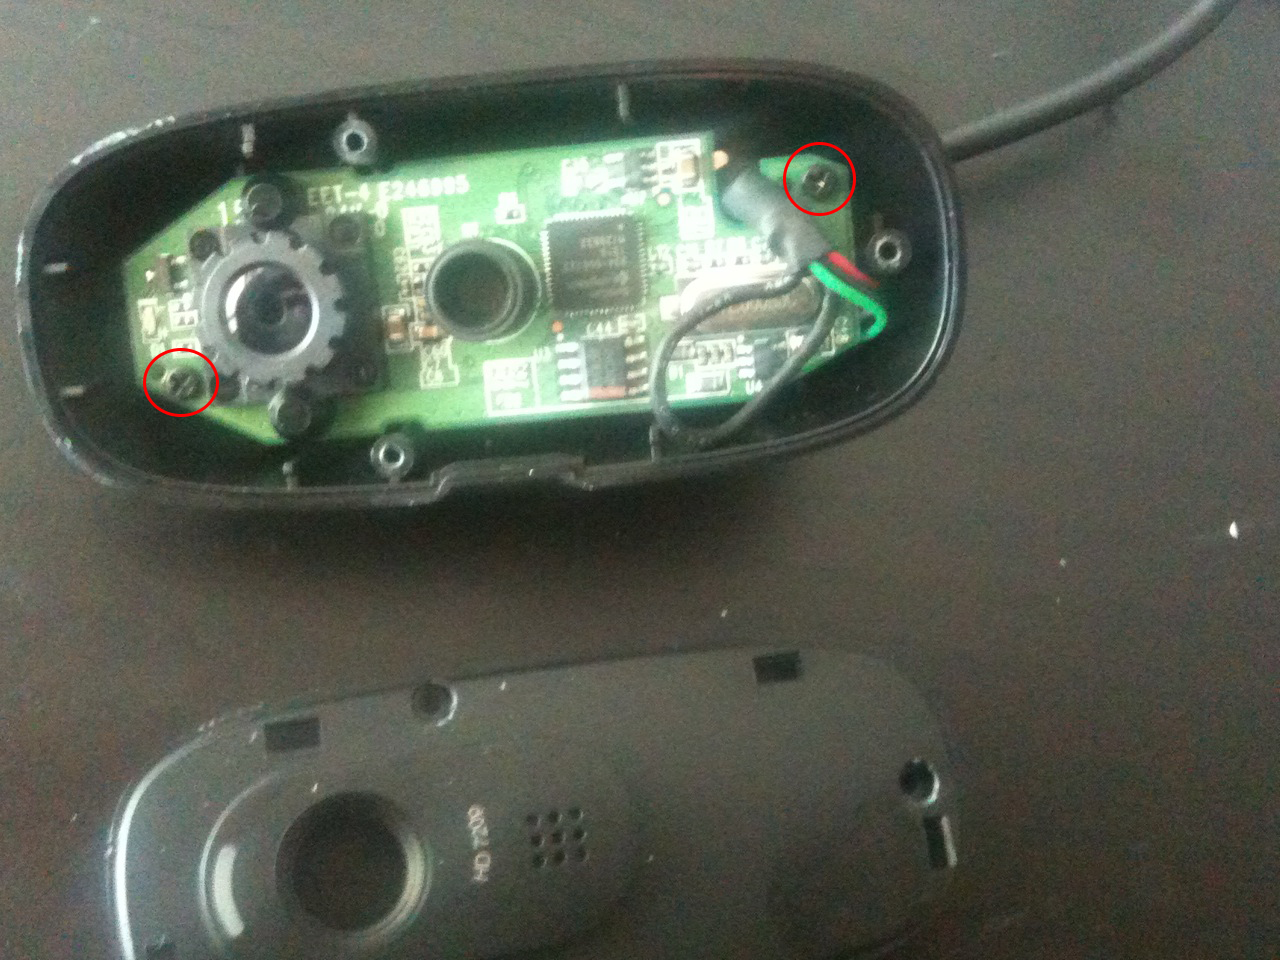 How To Make A Diy Home Alarm System With Raspberry Pi And Webcam Logitech C270 Remove The Two Screws That Hold Camera Board Case